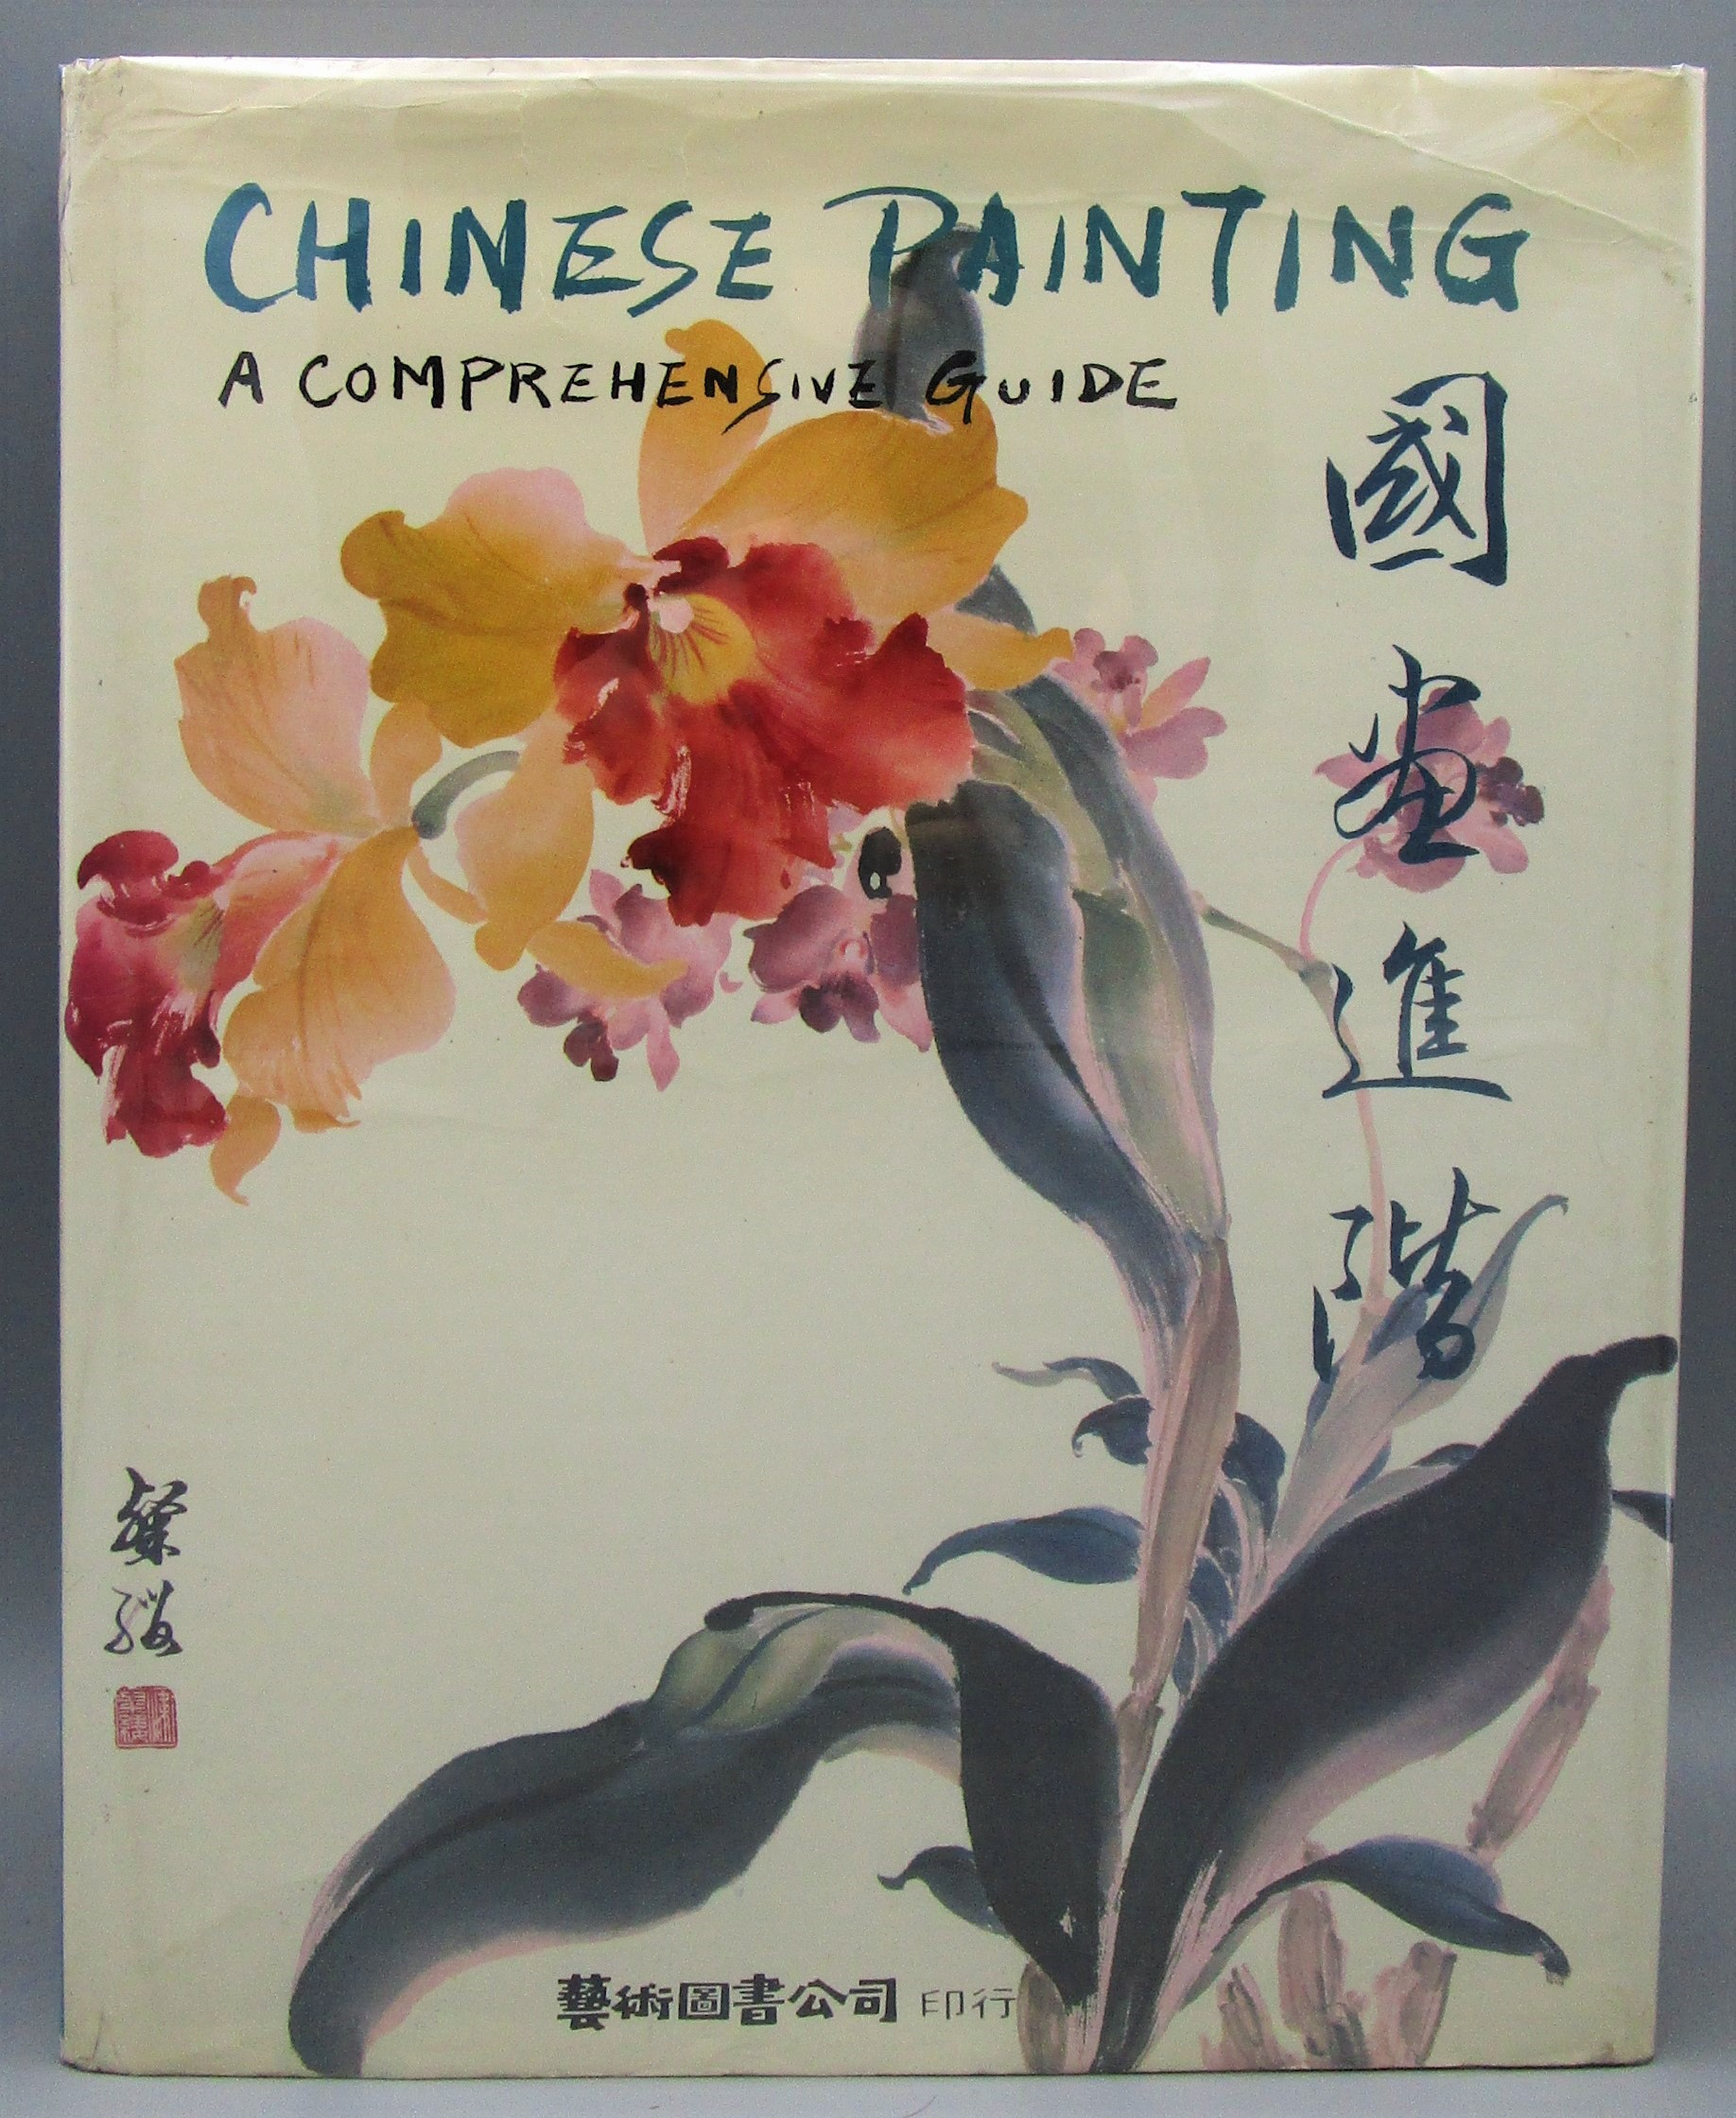 CHINESE PAINTING: A COMPREHENSIVE GUIDE, by Chow Chian-Chiu & Chow Chen-Ying - 1979 [Signed 1st Ed]